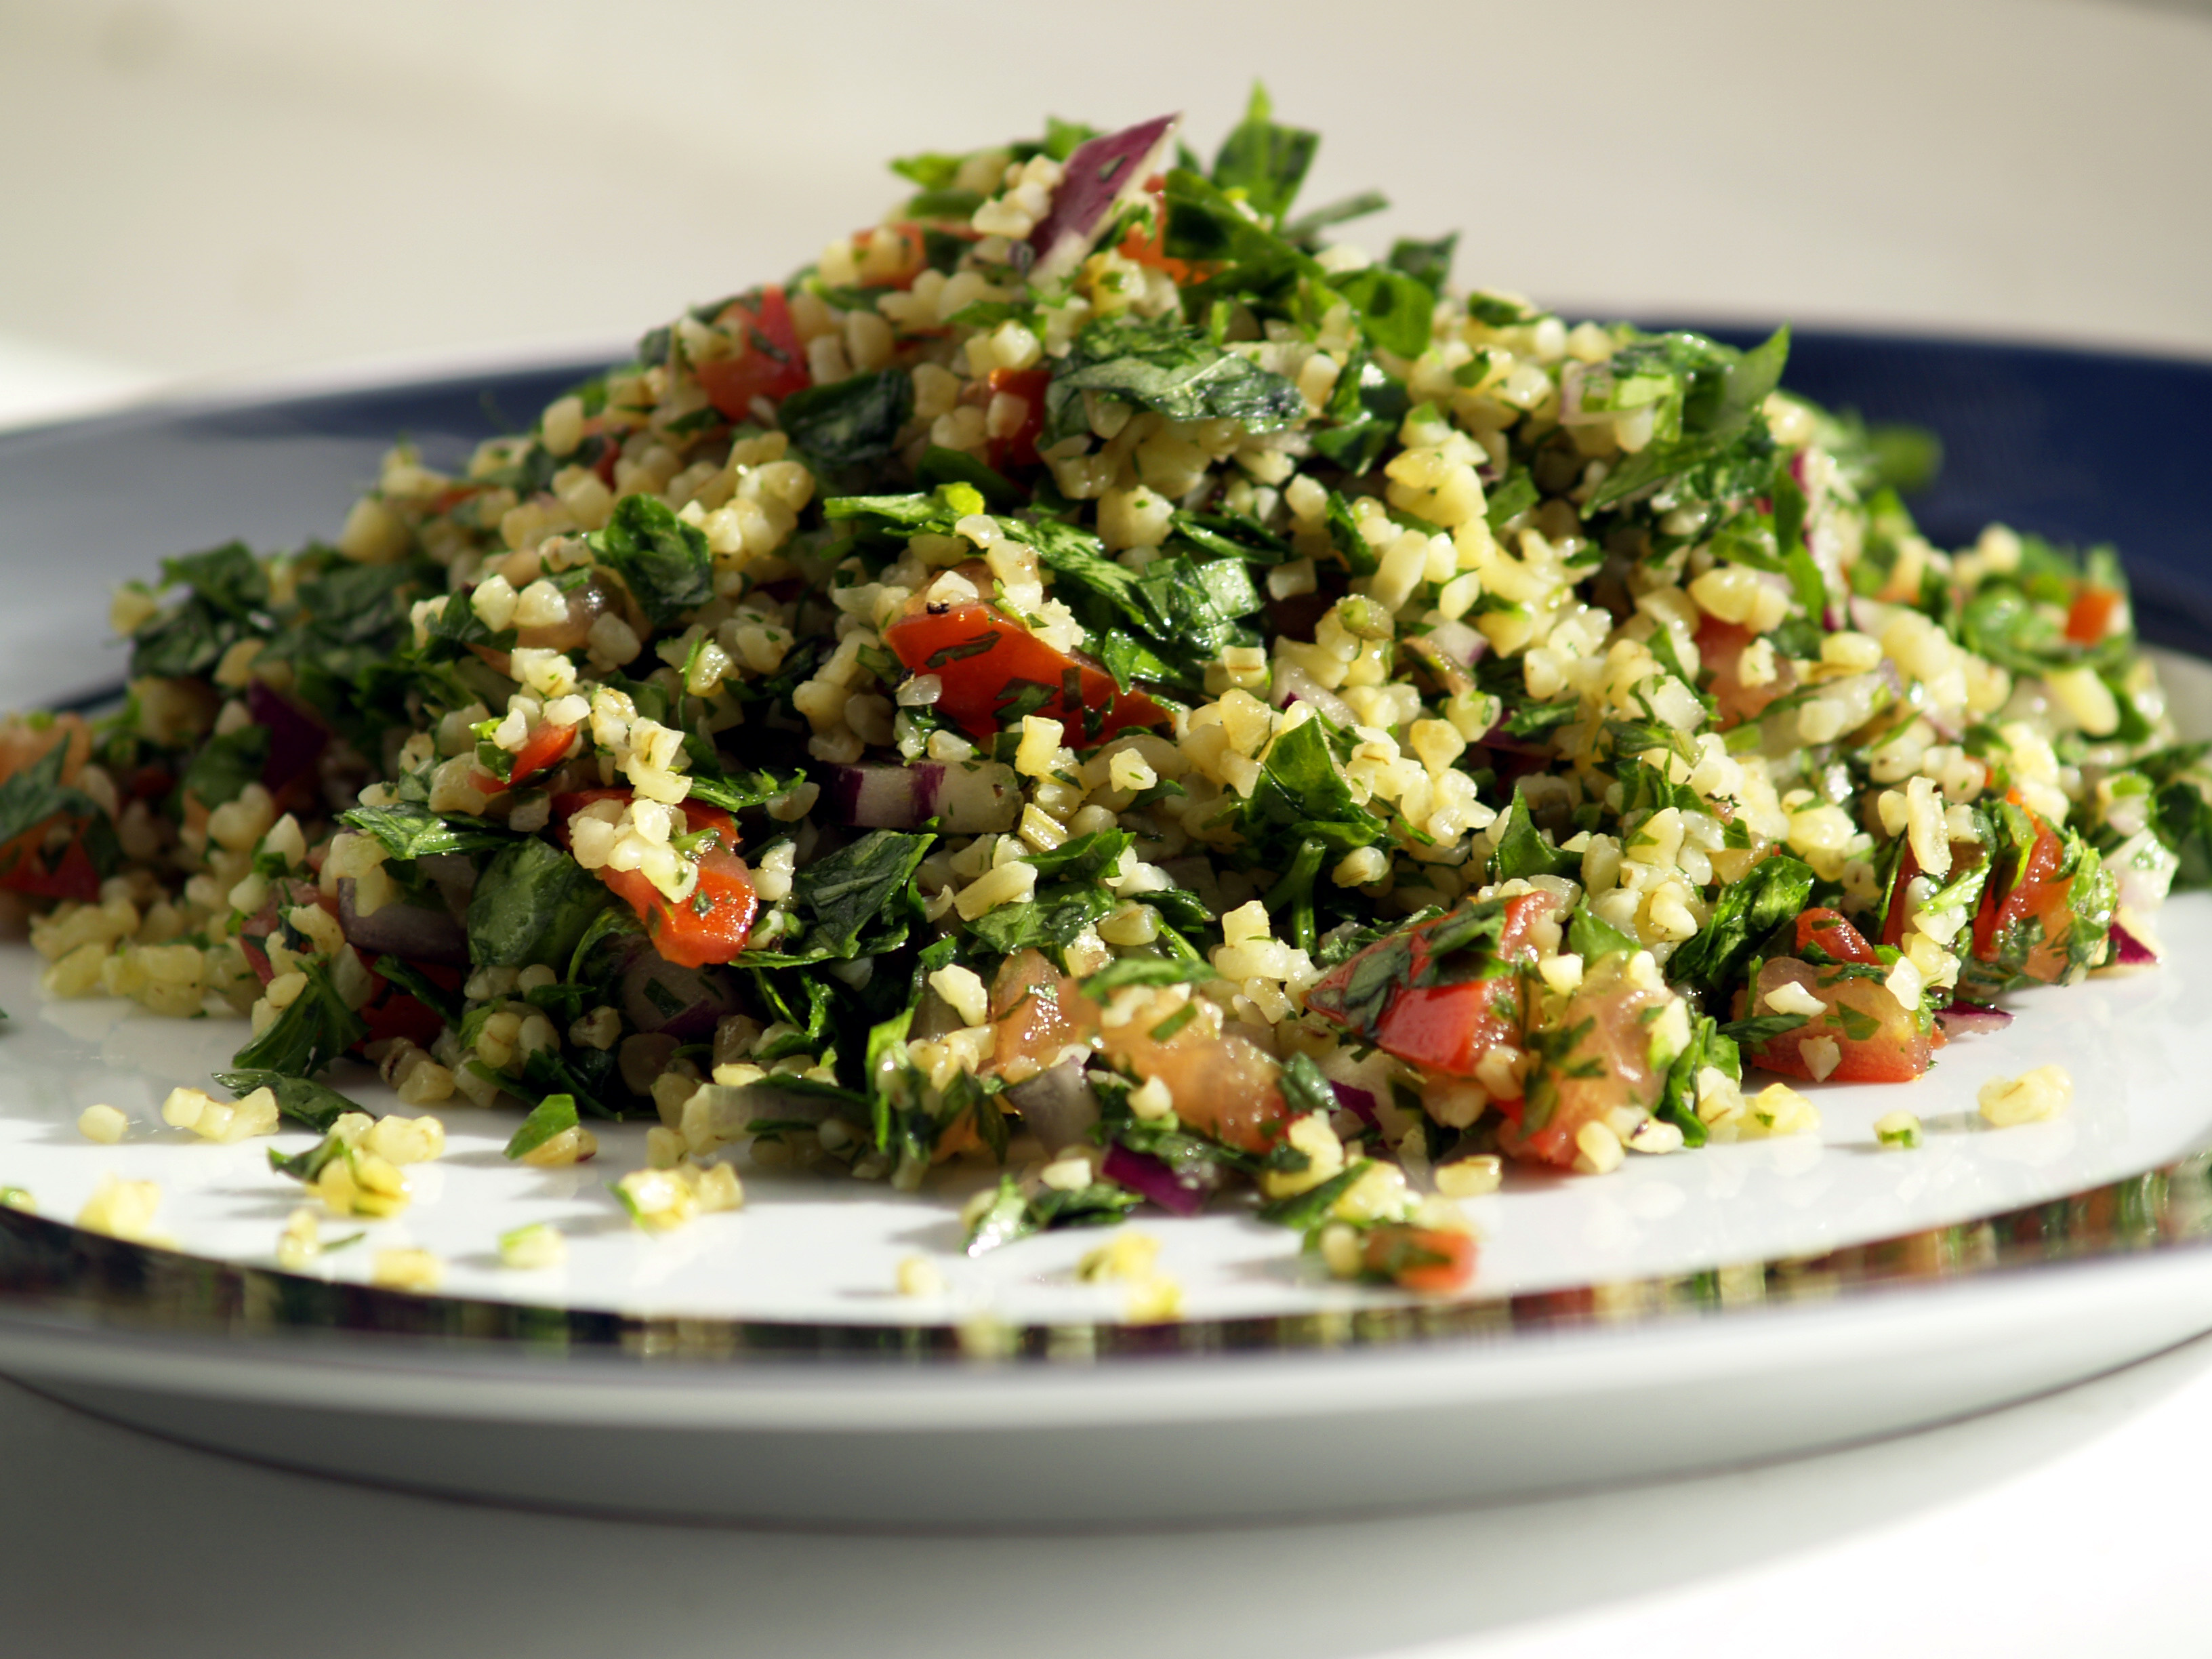 File:Flickr - cyclonebill - Tabbouleh.jpg